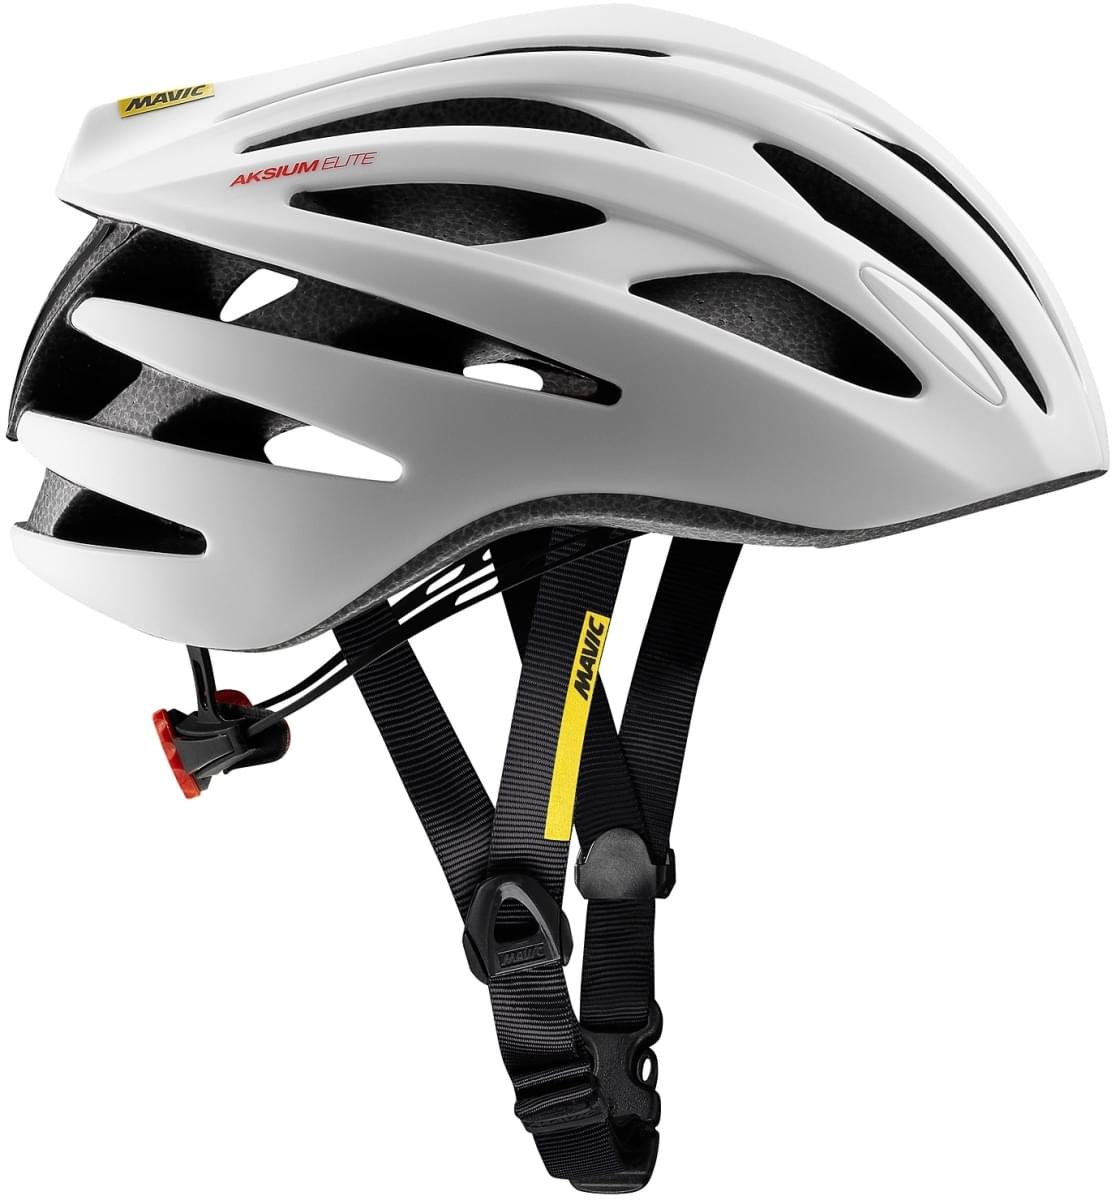 Mavic Aksium Elite Helmet - white/black M